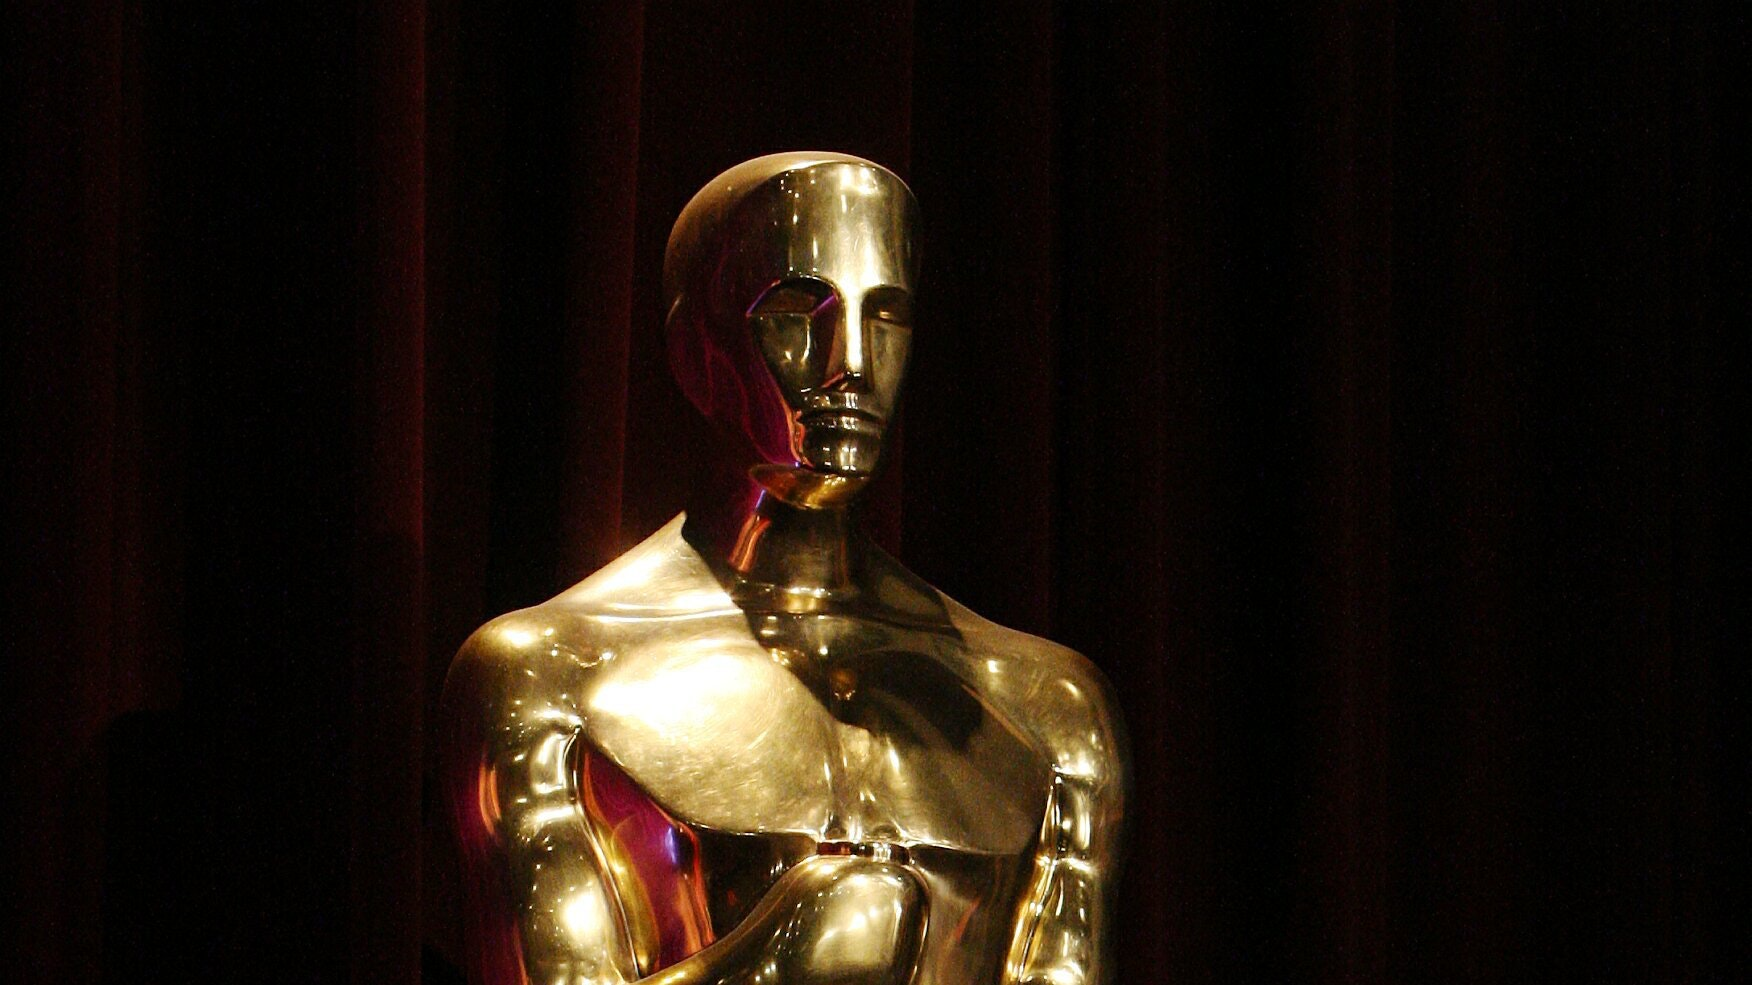 President of the Academy accused of sexual harassment